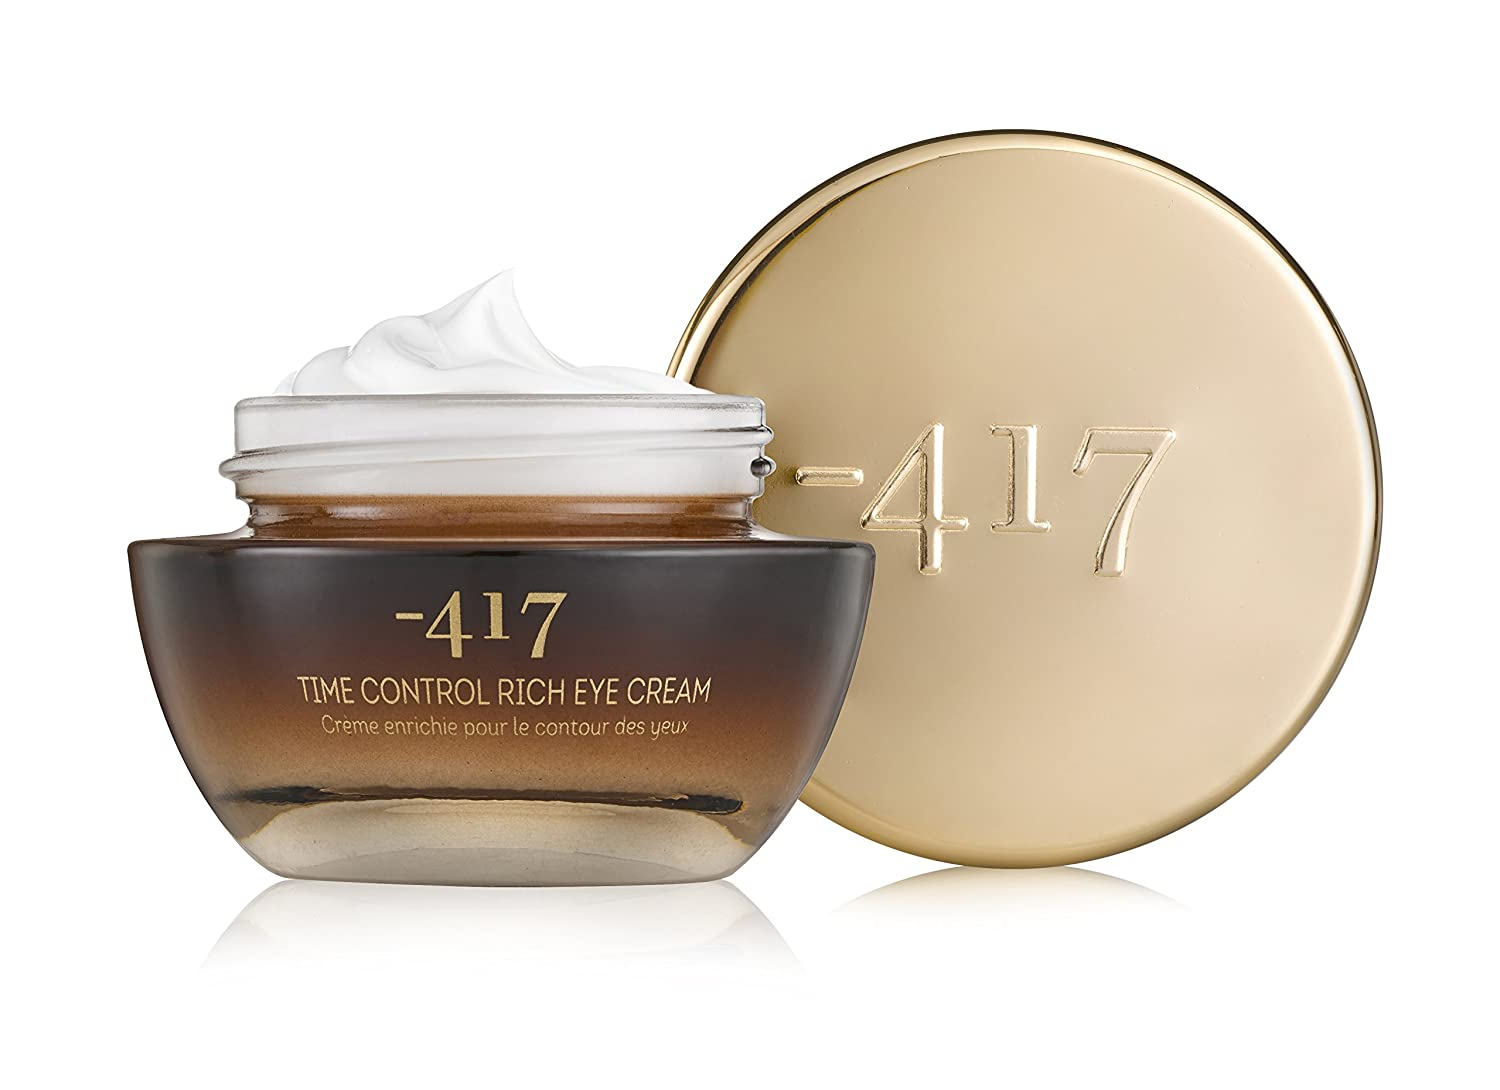 -417 Dead Sea Eye Cream Time Control Rich Eye Cream - Anti-Aging, Firms and Tightens Skin Best Eye Creme for Dark Circles, Puffiness and Wrinkles